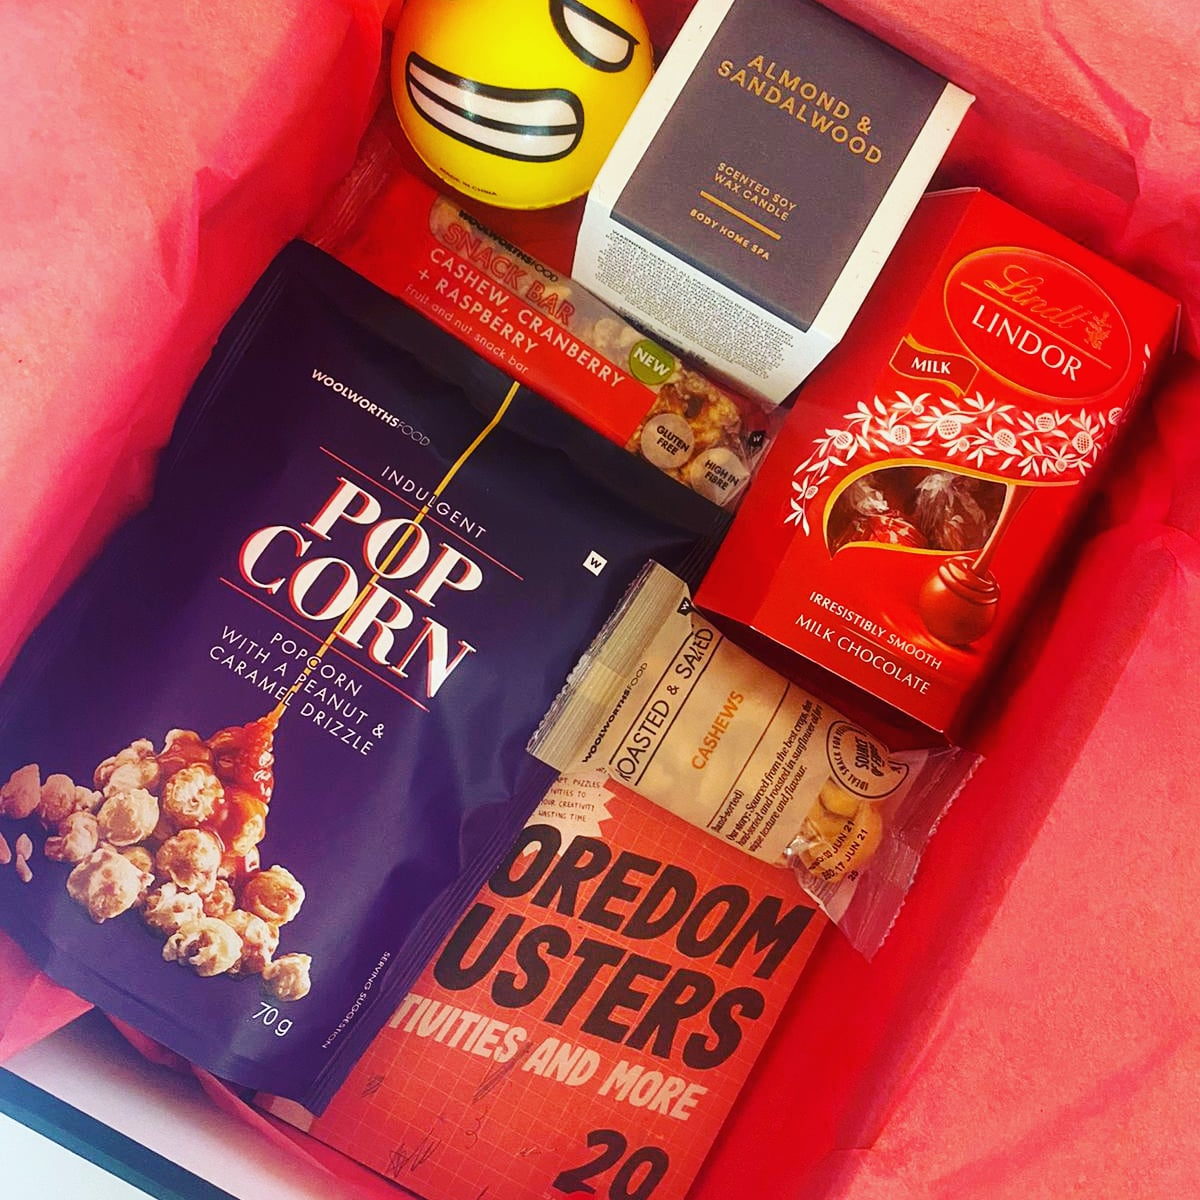 Care package from the office 😊 Some pampering and a reminder in the midst of all the C-19 stress, we are a team even if we don't physically see each other 😍 Razor PR #teamwork #teamworkmakesthedreamwork #tuesdayvibe #tuesdaymotivations